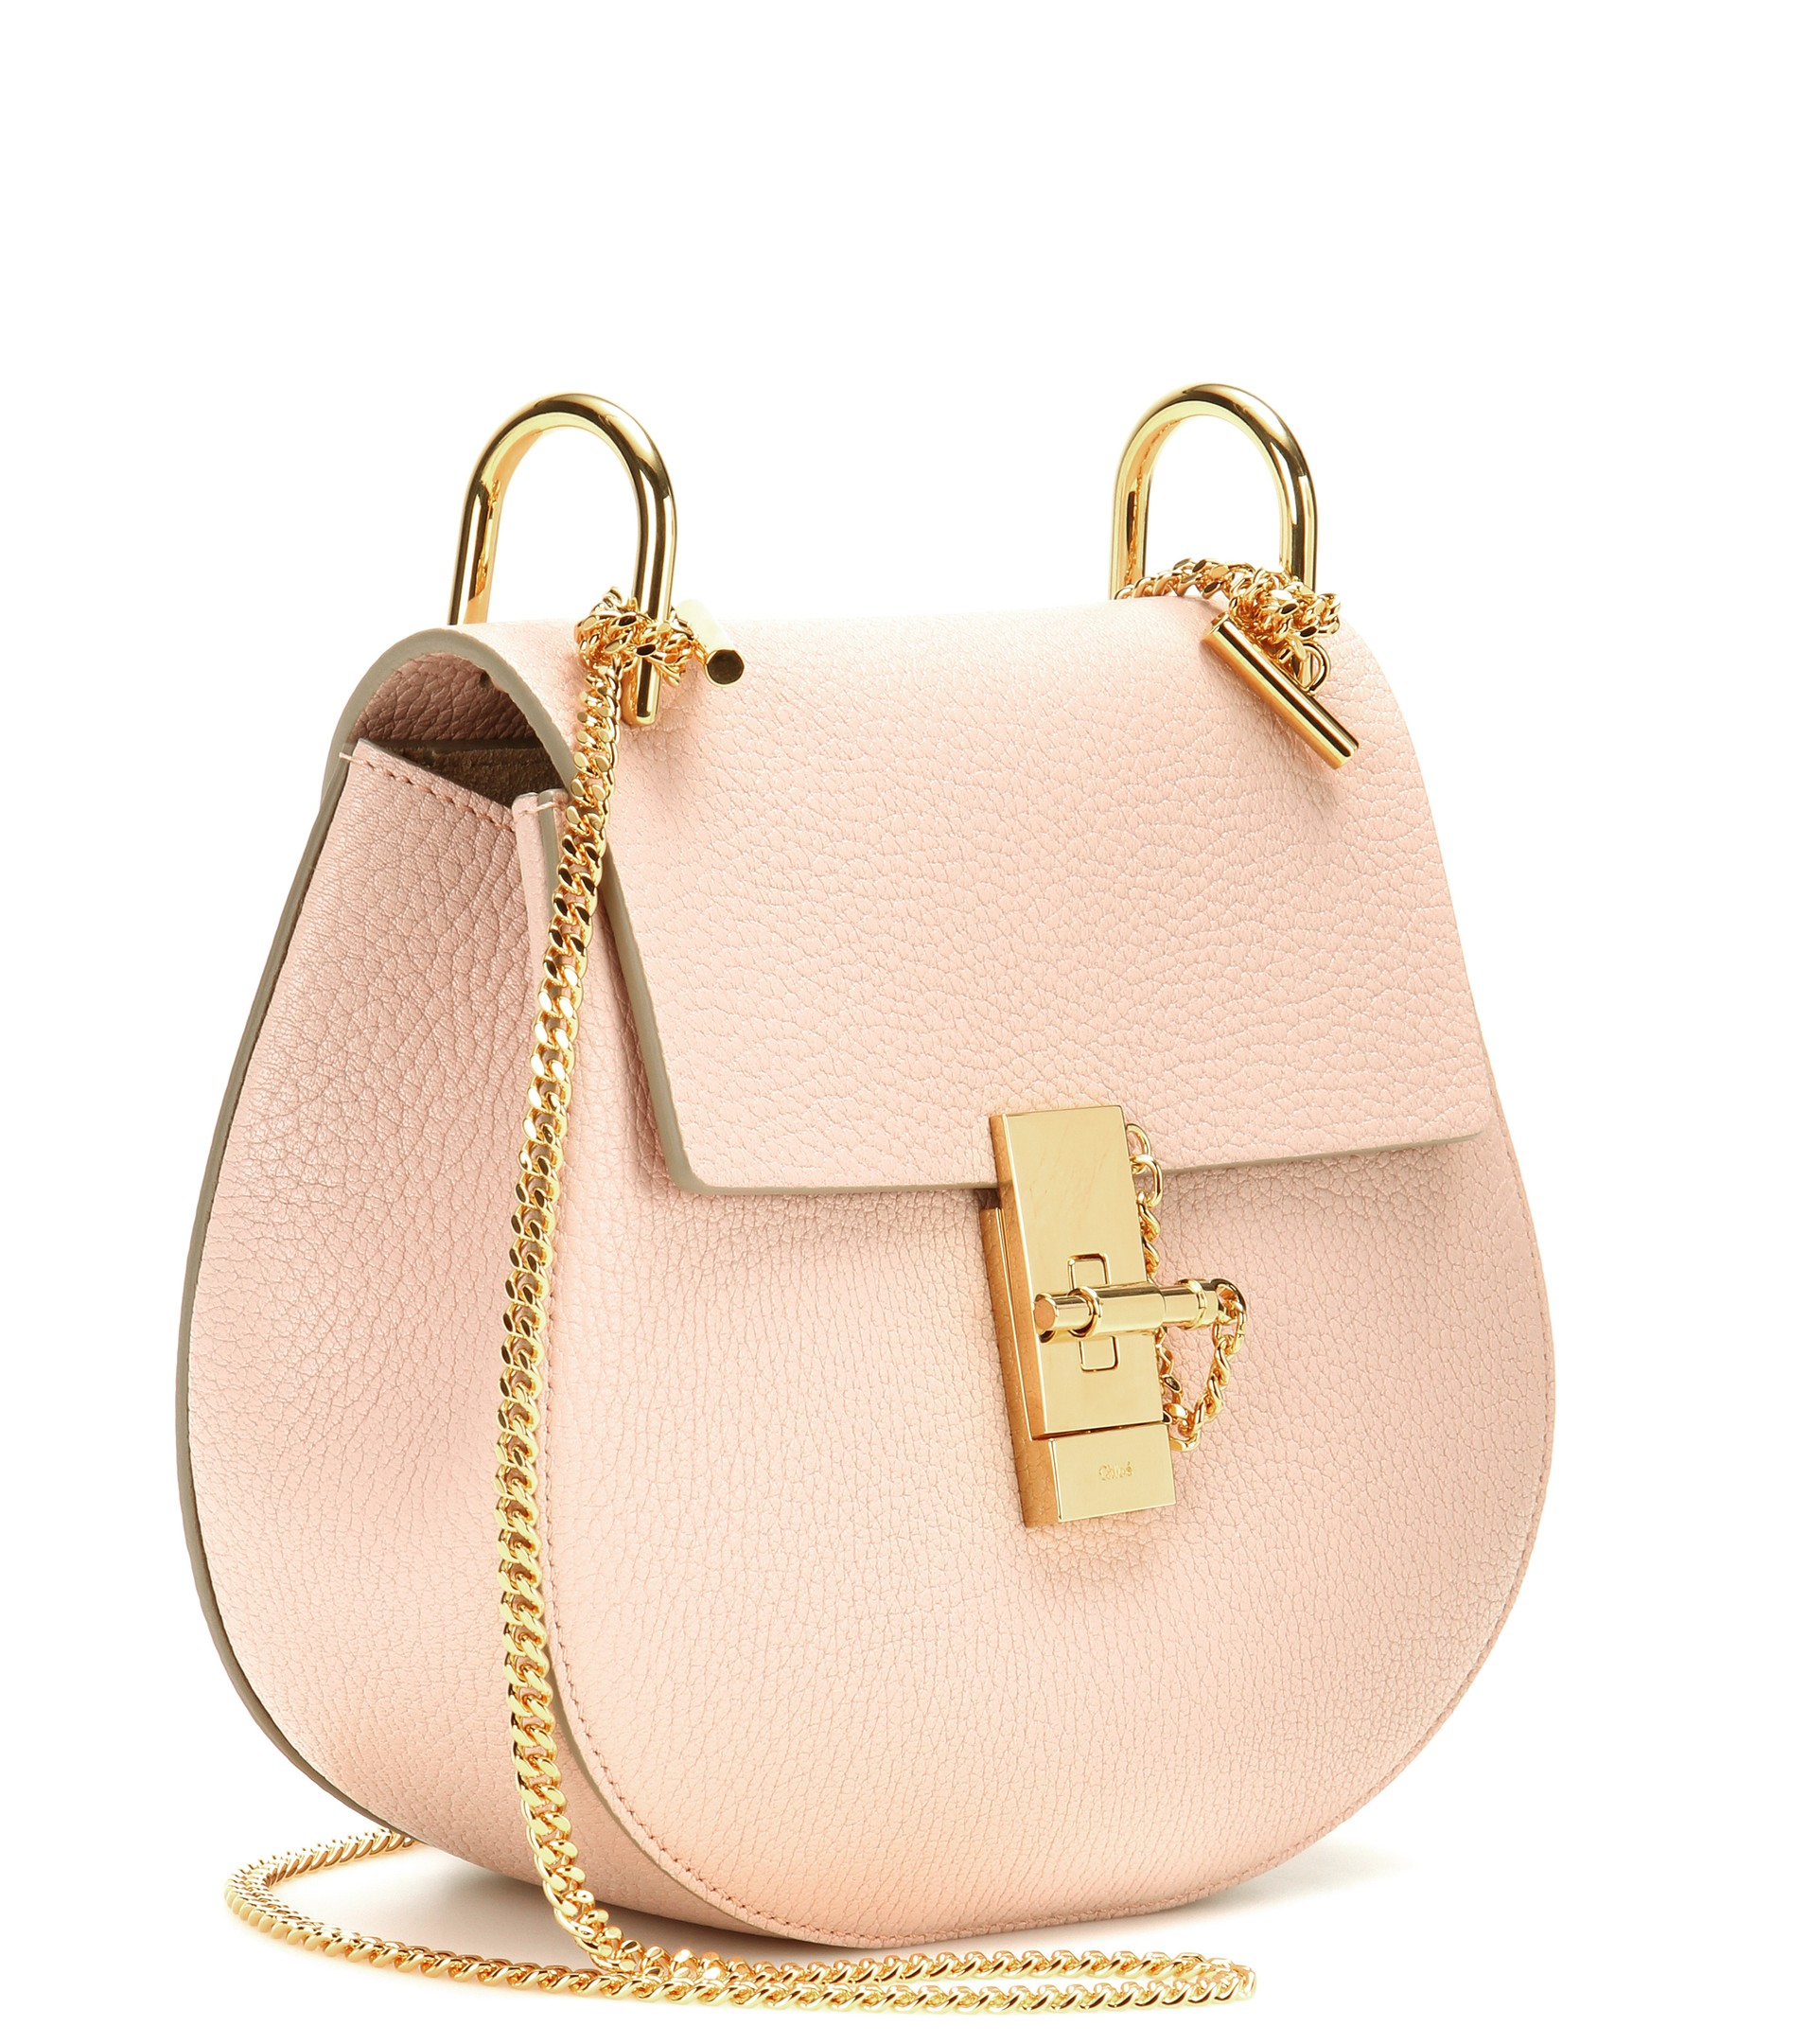 cheap chloe handbags uk - chloe medium drew lambskin leather shoulder bag, choloe handbags